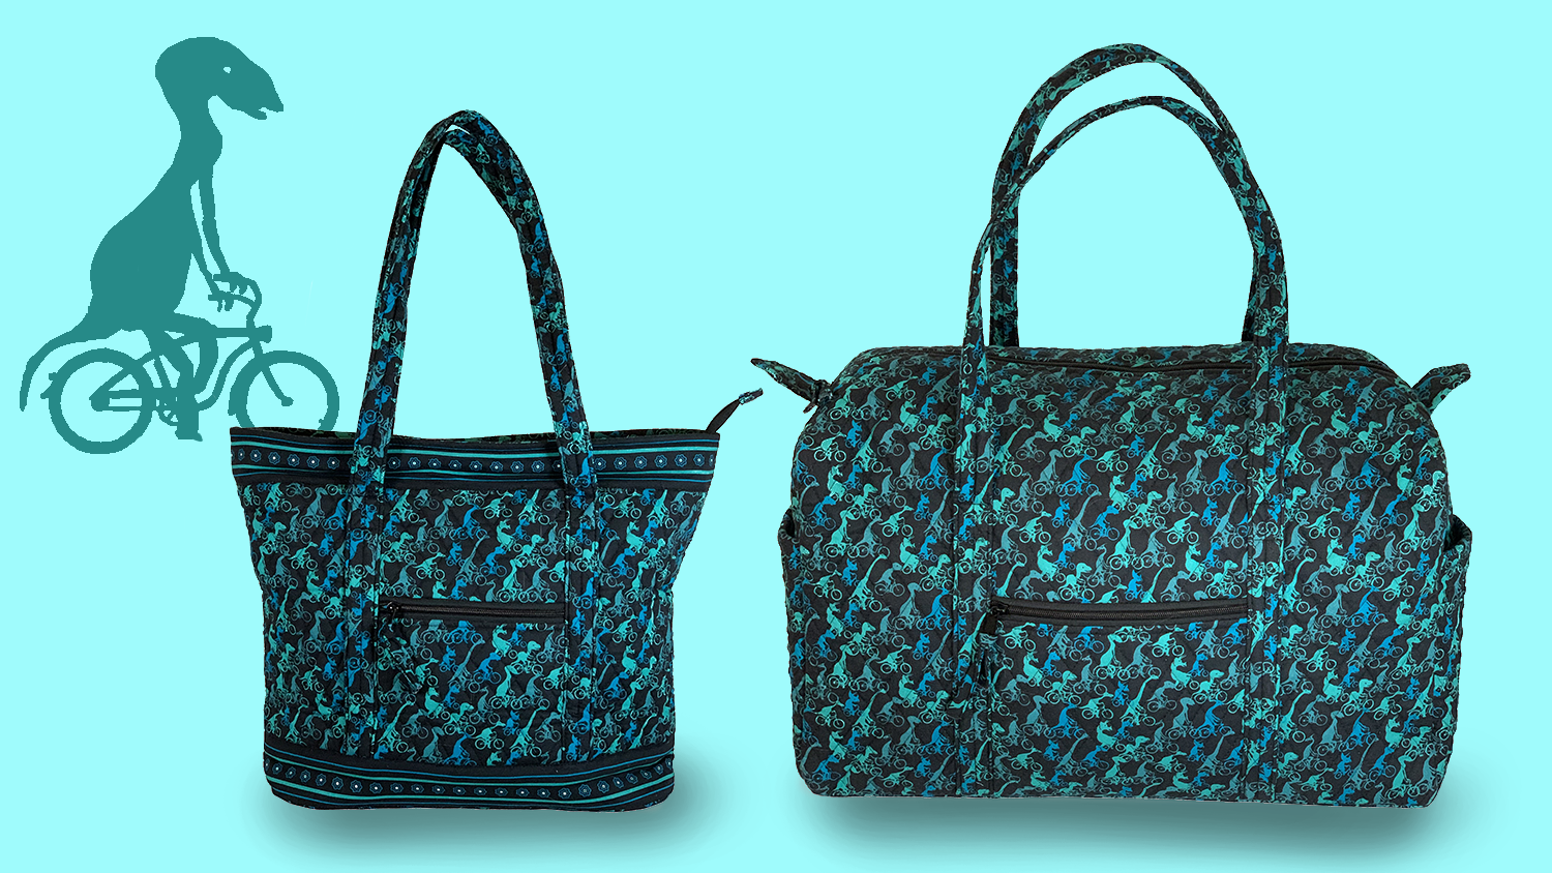 Quilted-cotton bags for great escapes.